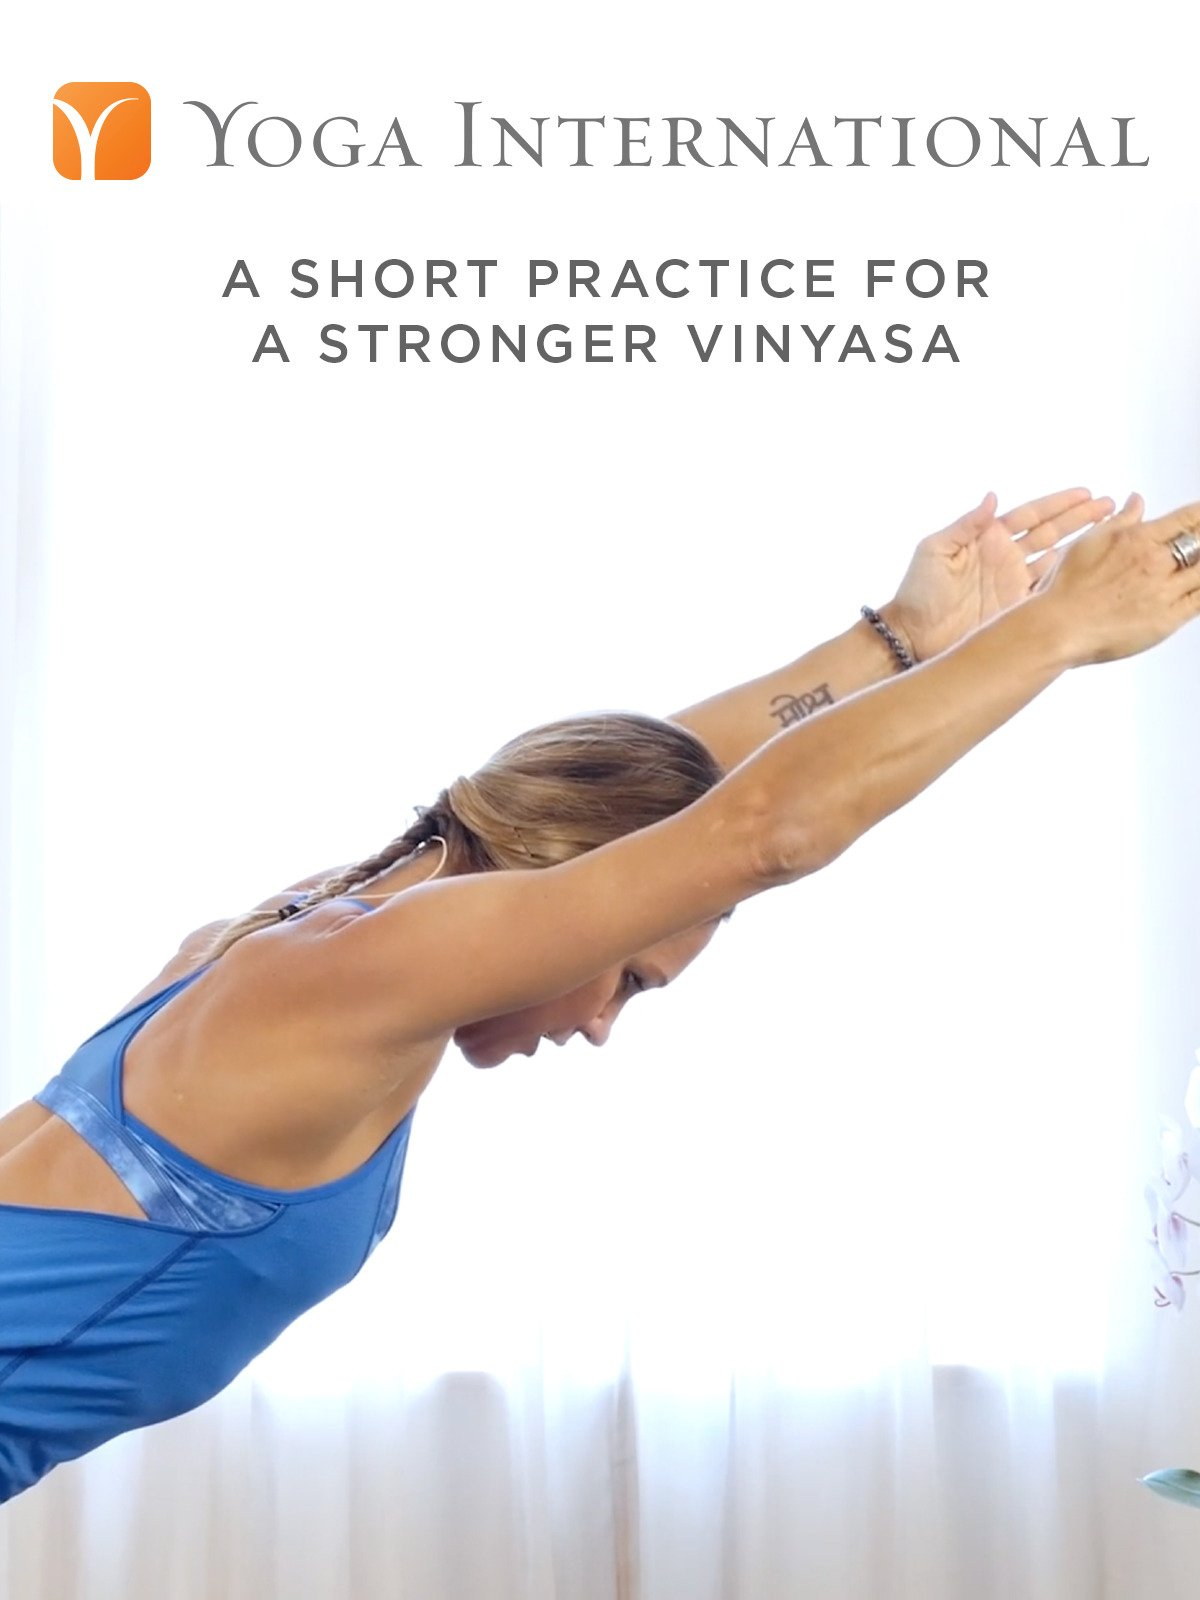 A Short Practice for a Stronger Vinyasa